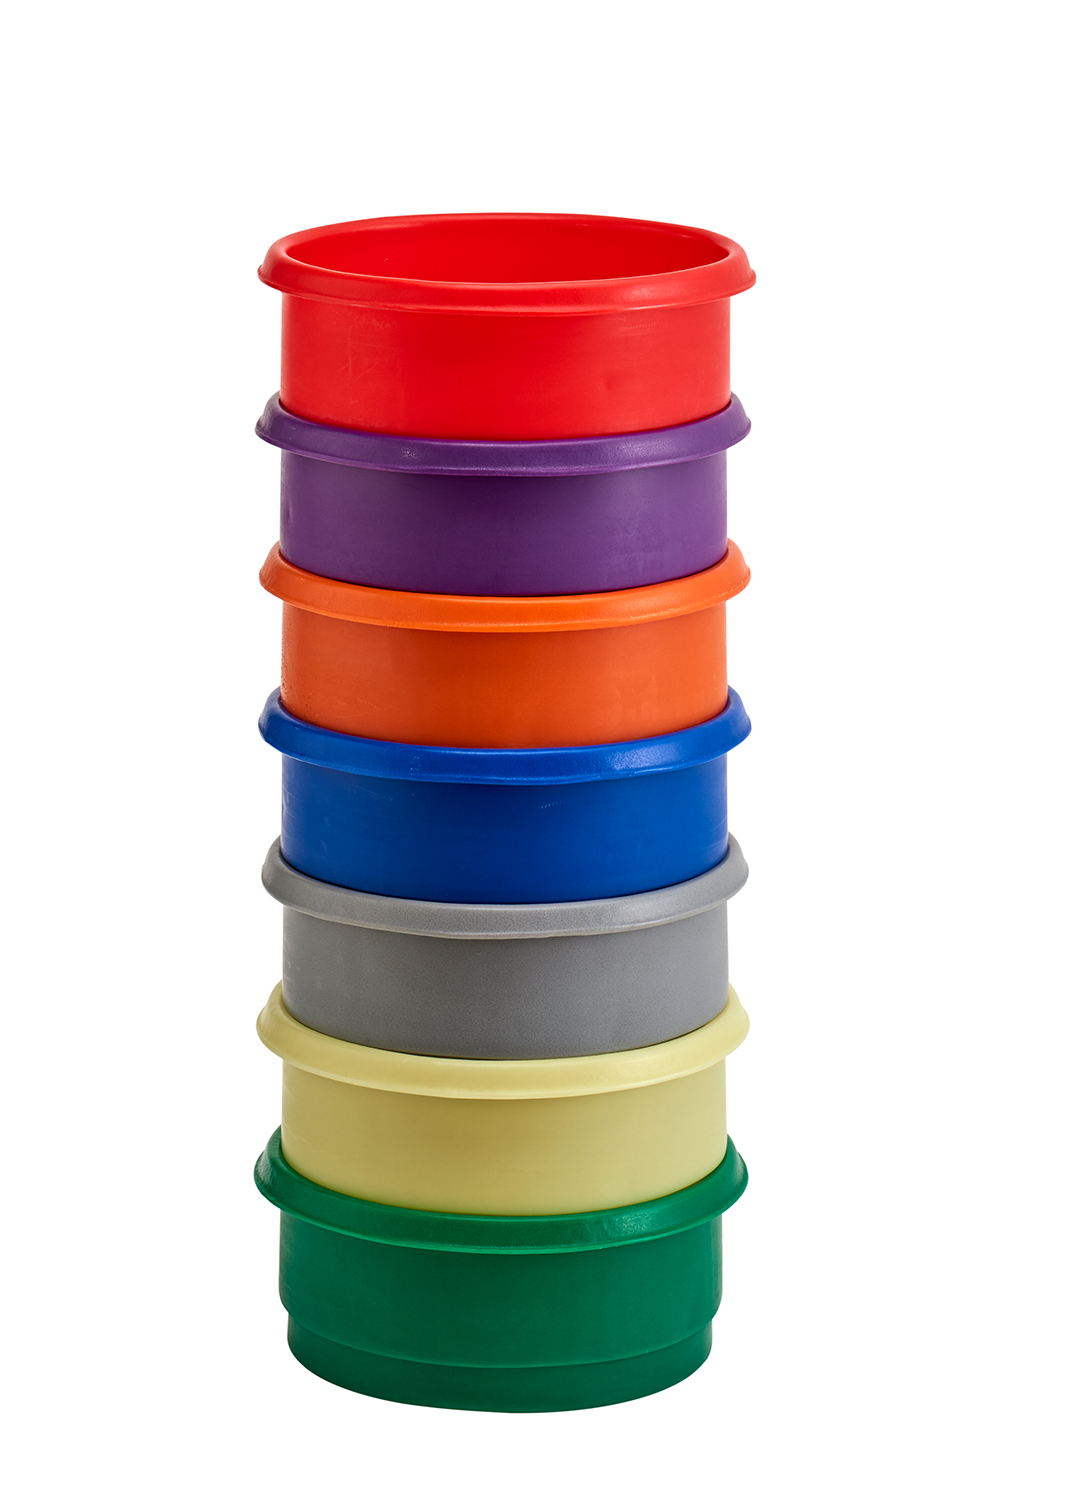 Inter-Stacking Plastic Bins